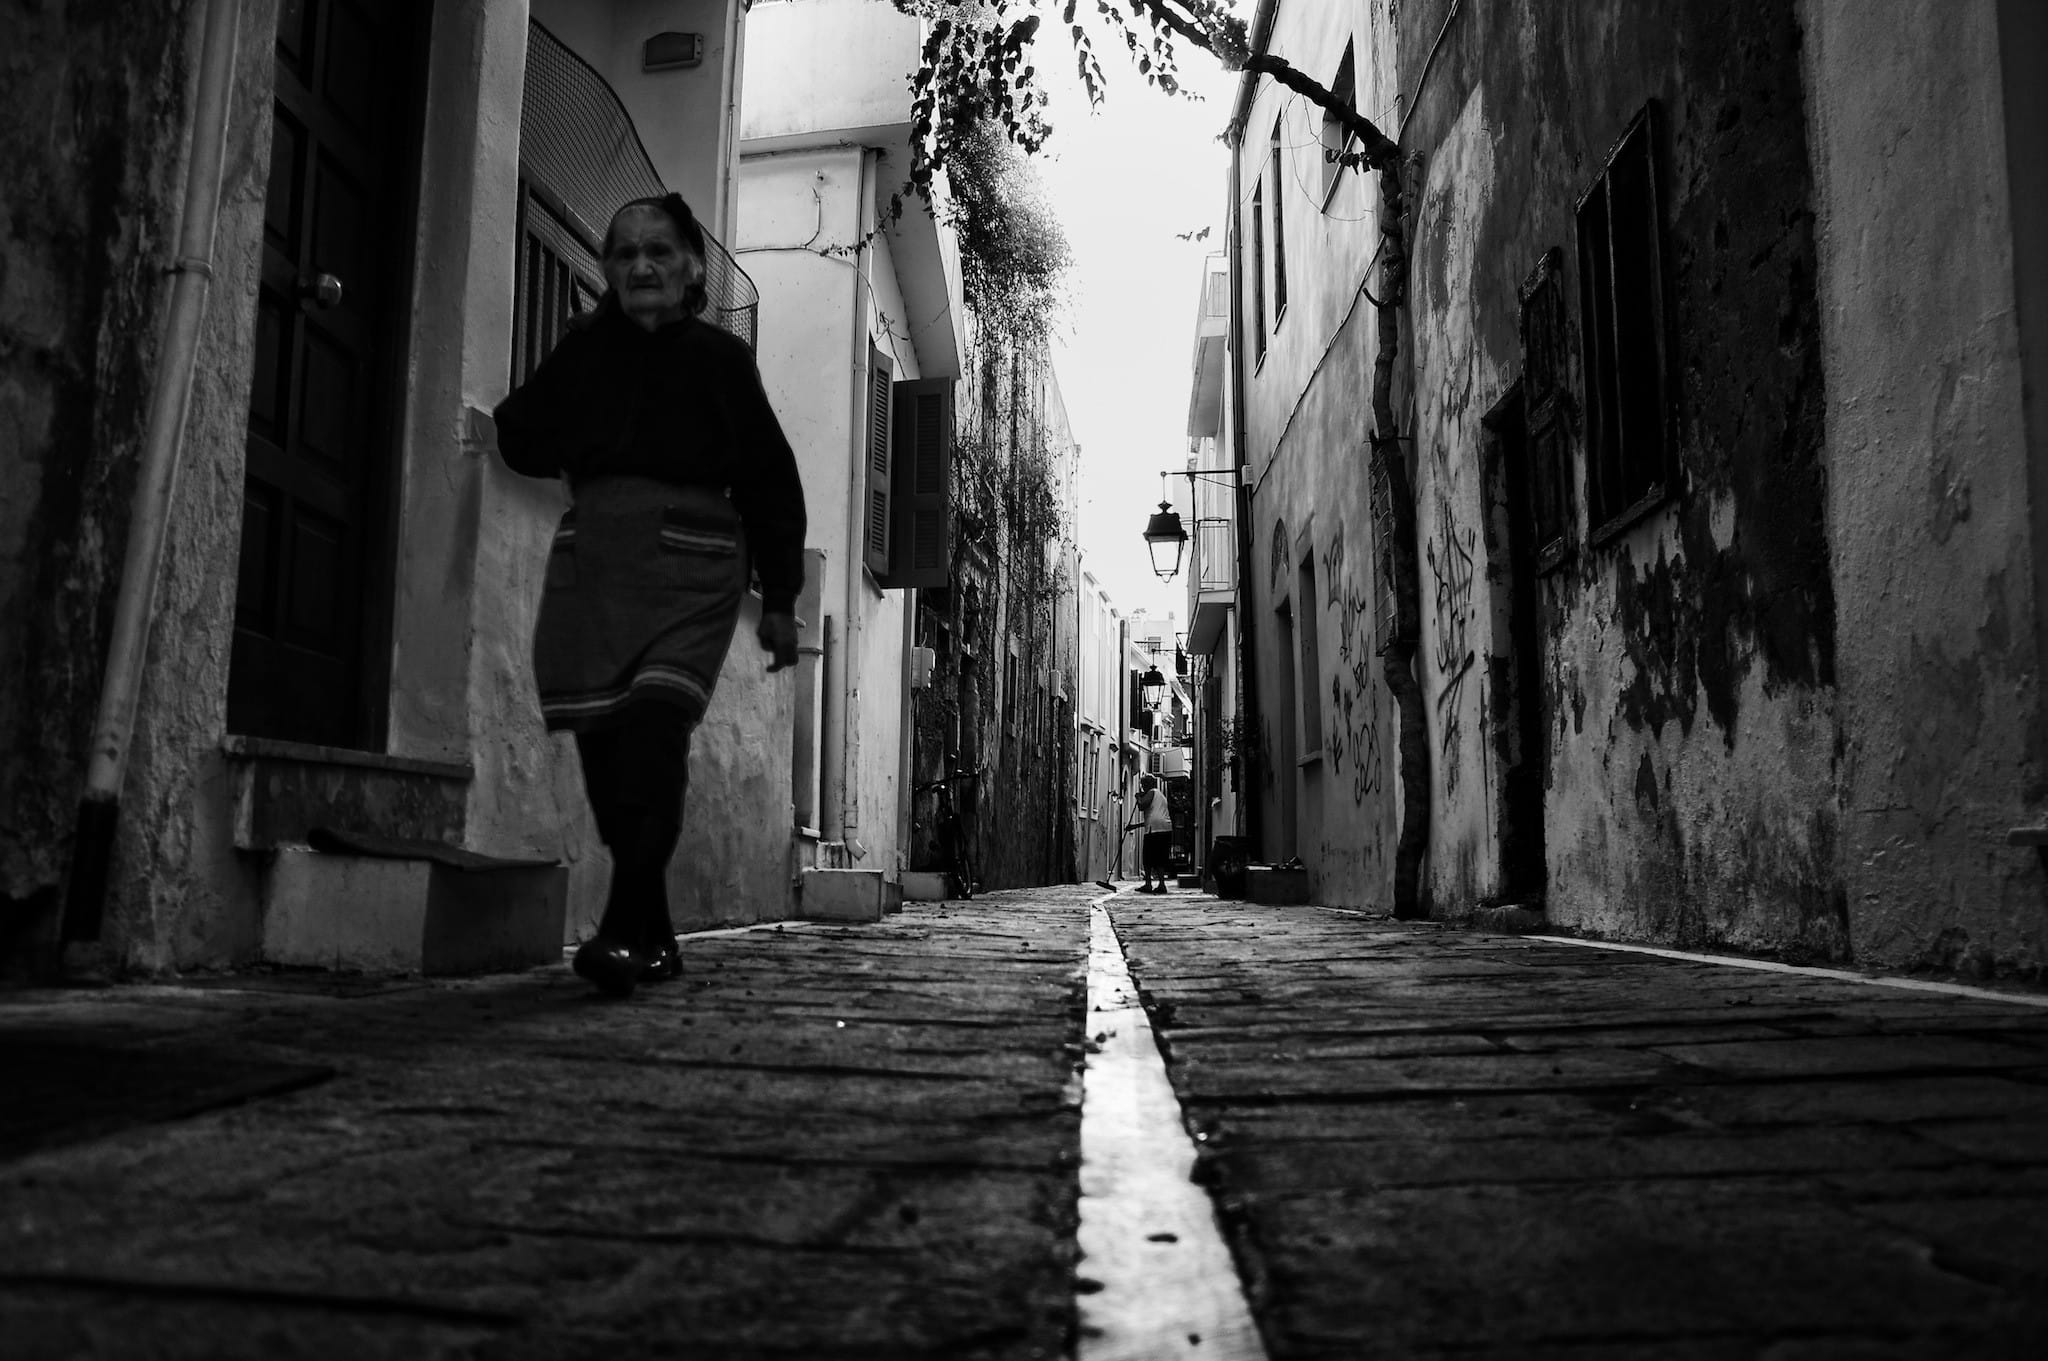 One morning in the Old Town of Rethymno